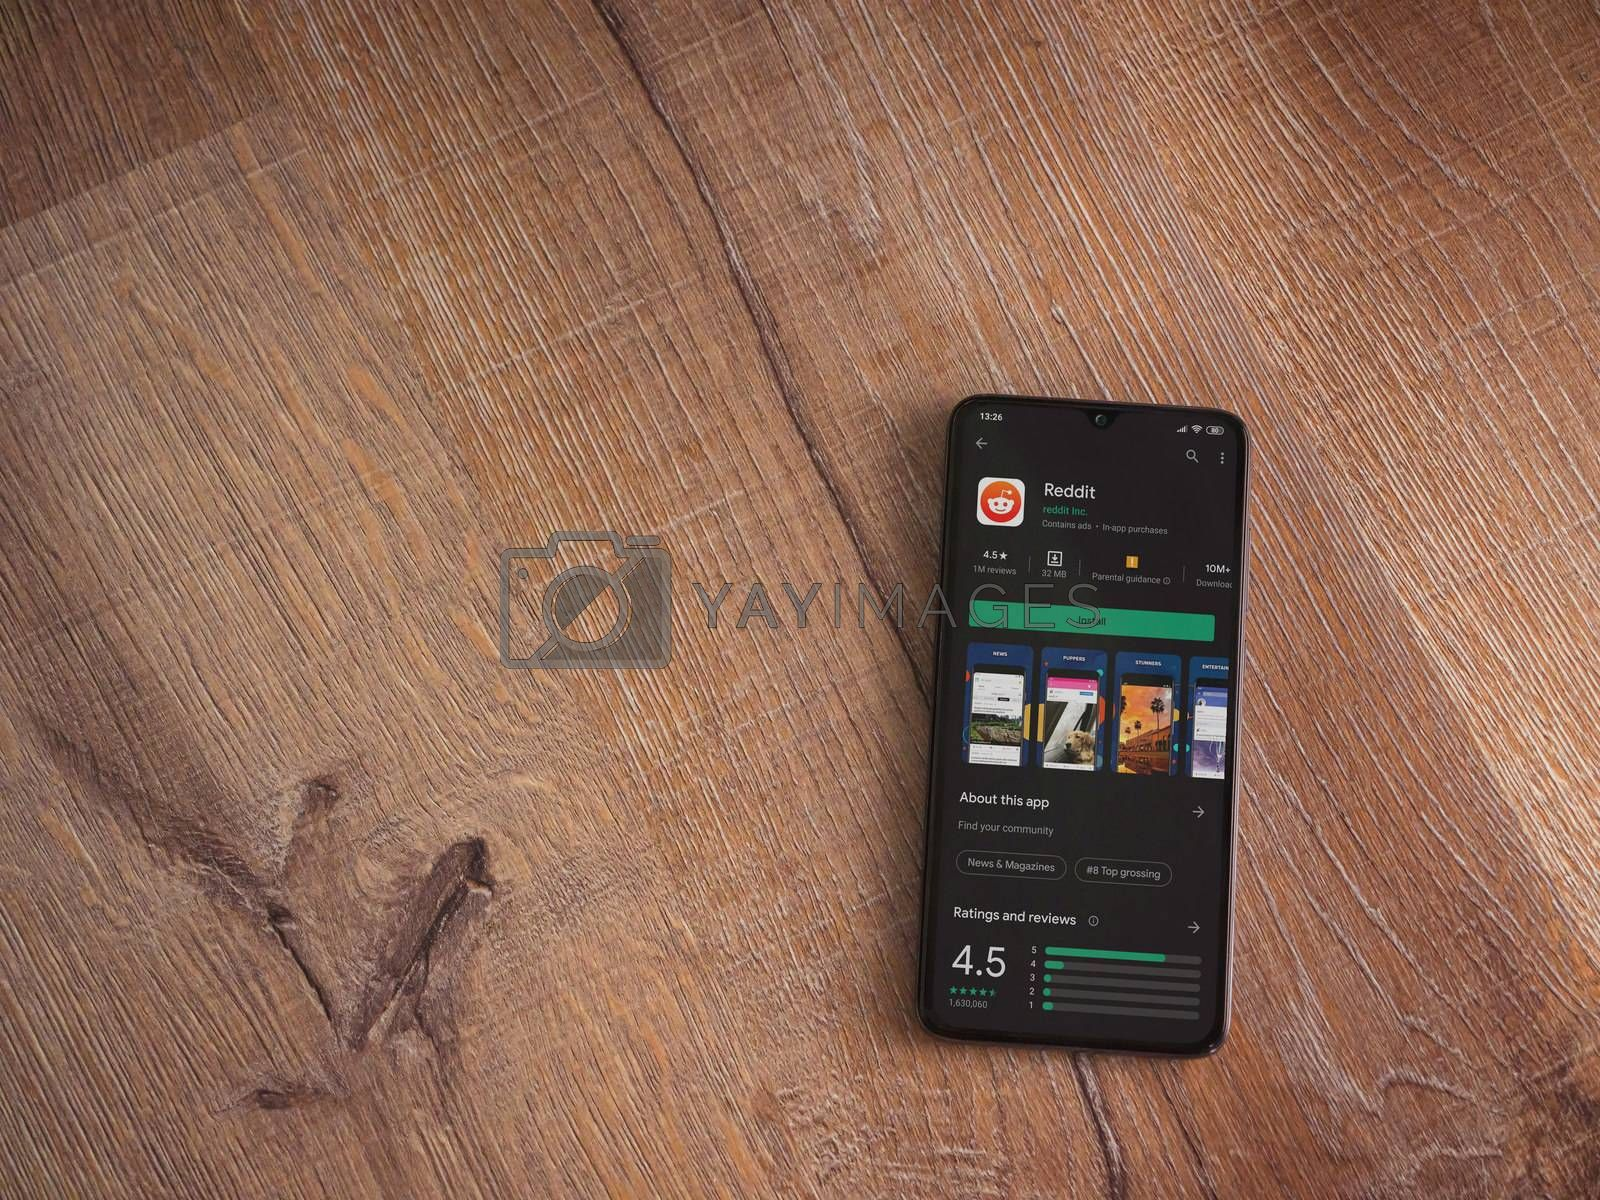 Lod, Israel - July 8, 2020: Reddit app play store page on the display of a black mobile smartphone on wooden background. Top view flat lay with copy space.